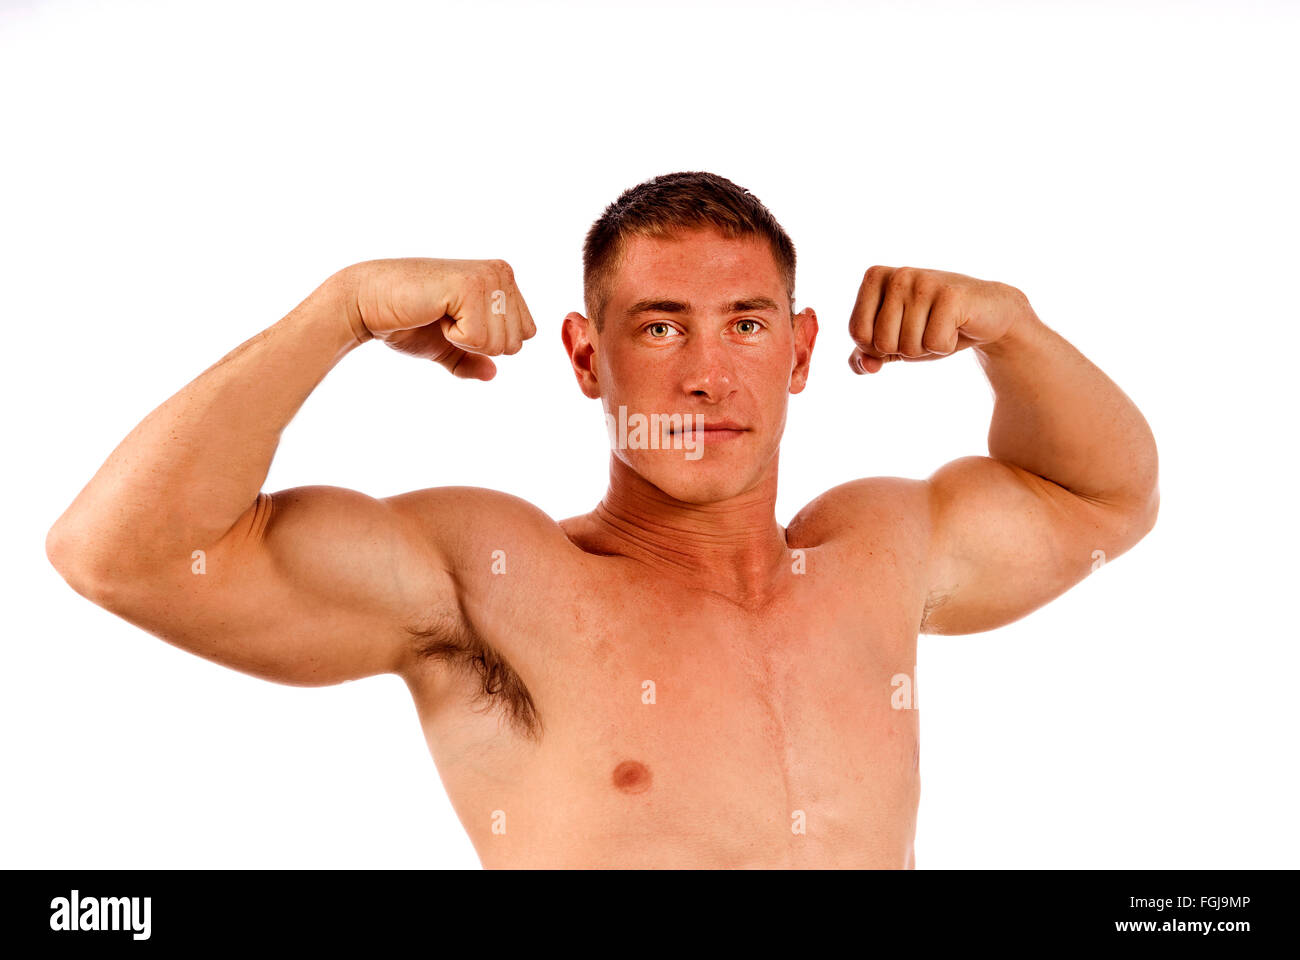 Man Flexing Muscles Photo Stock